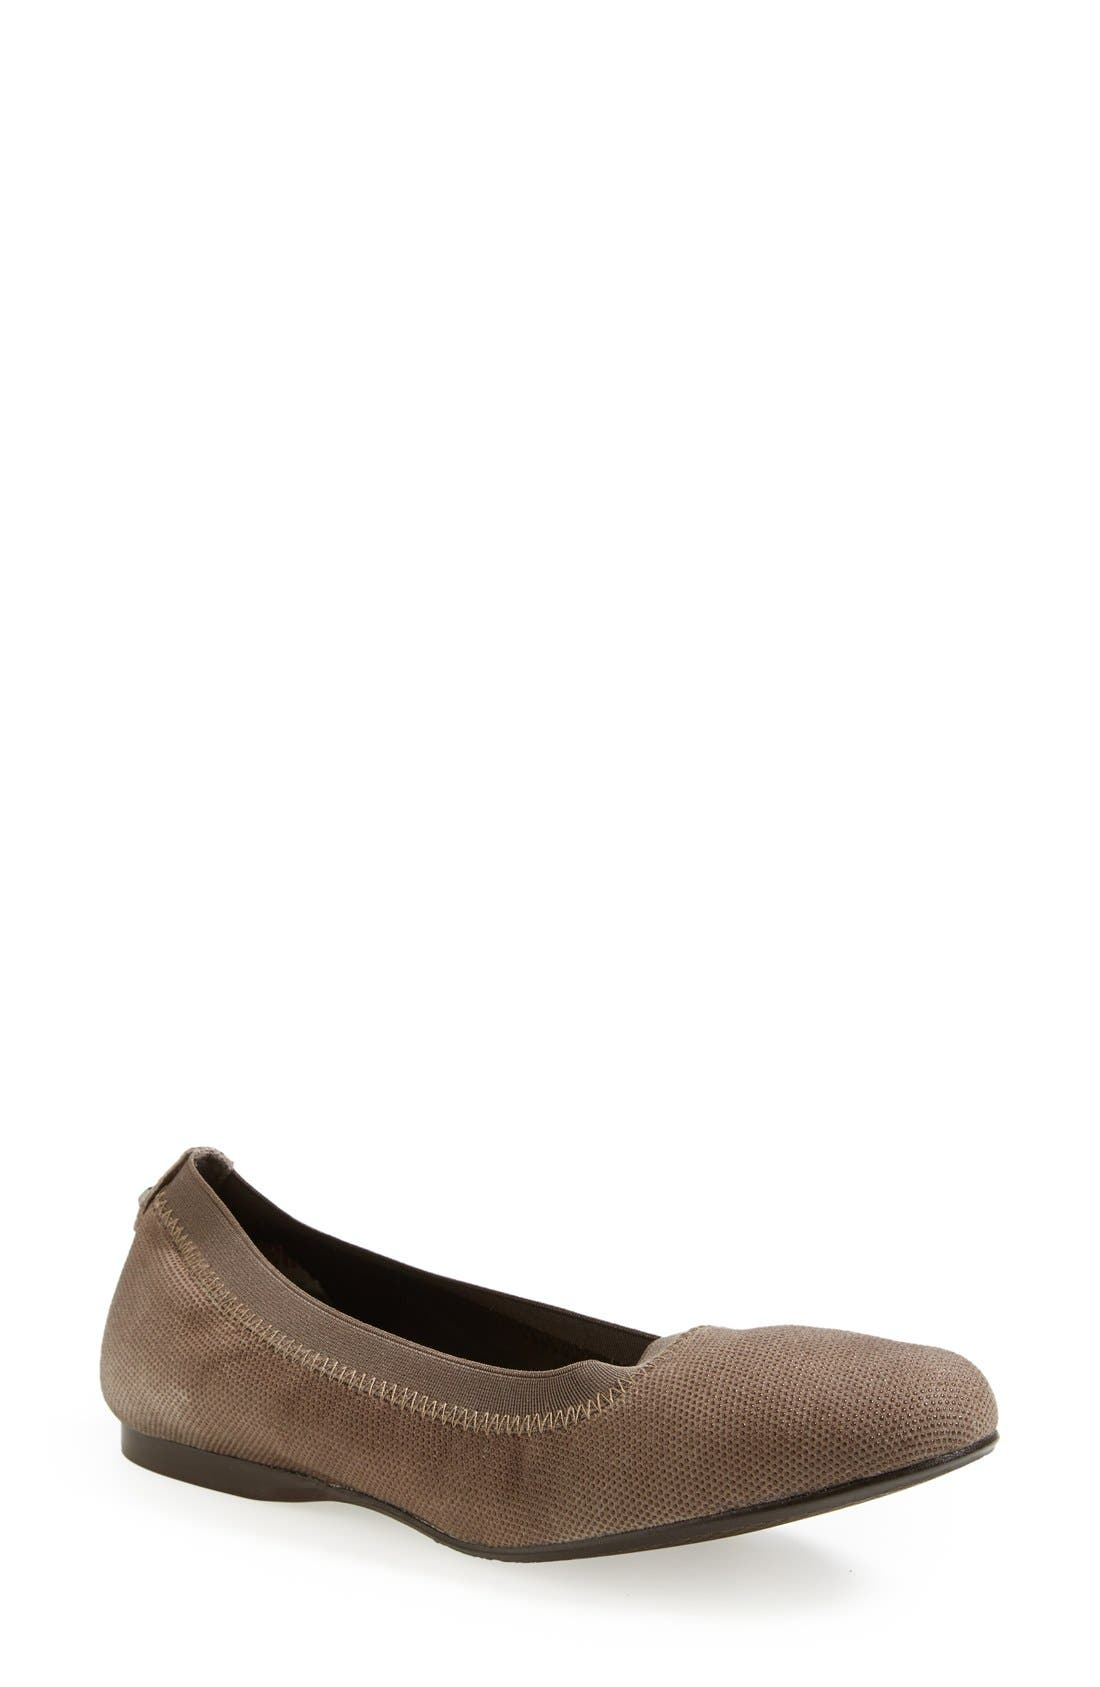 Alternate Image 1 Selected - Stuart Weitzman 'Slipin' Flat (Nordstrom Exclusive) (Women)